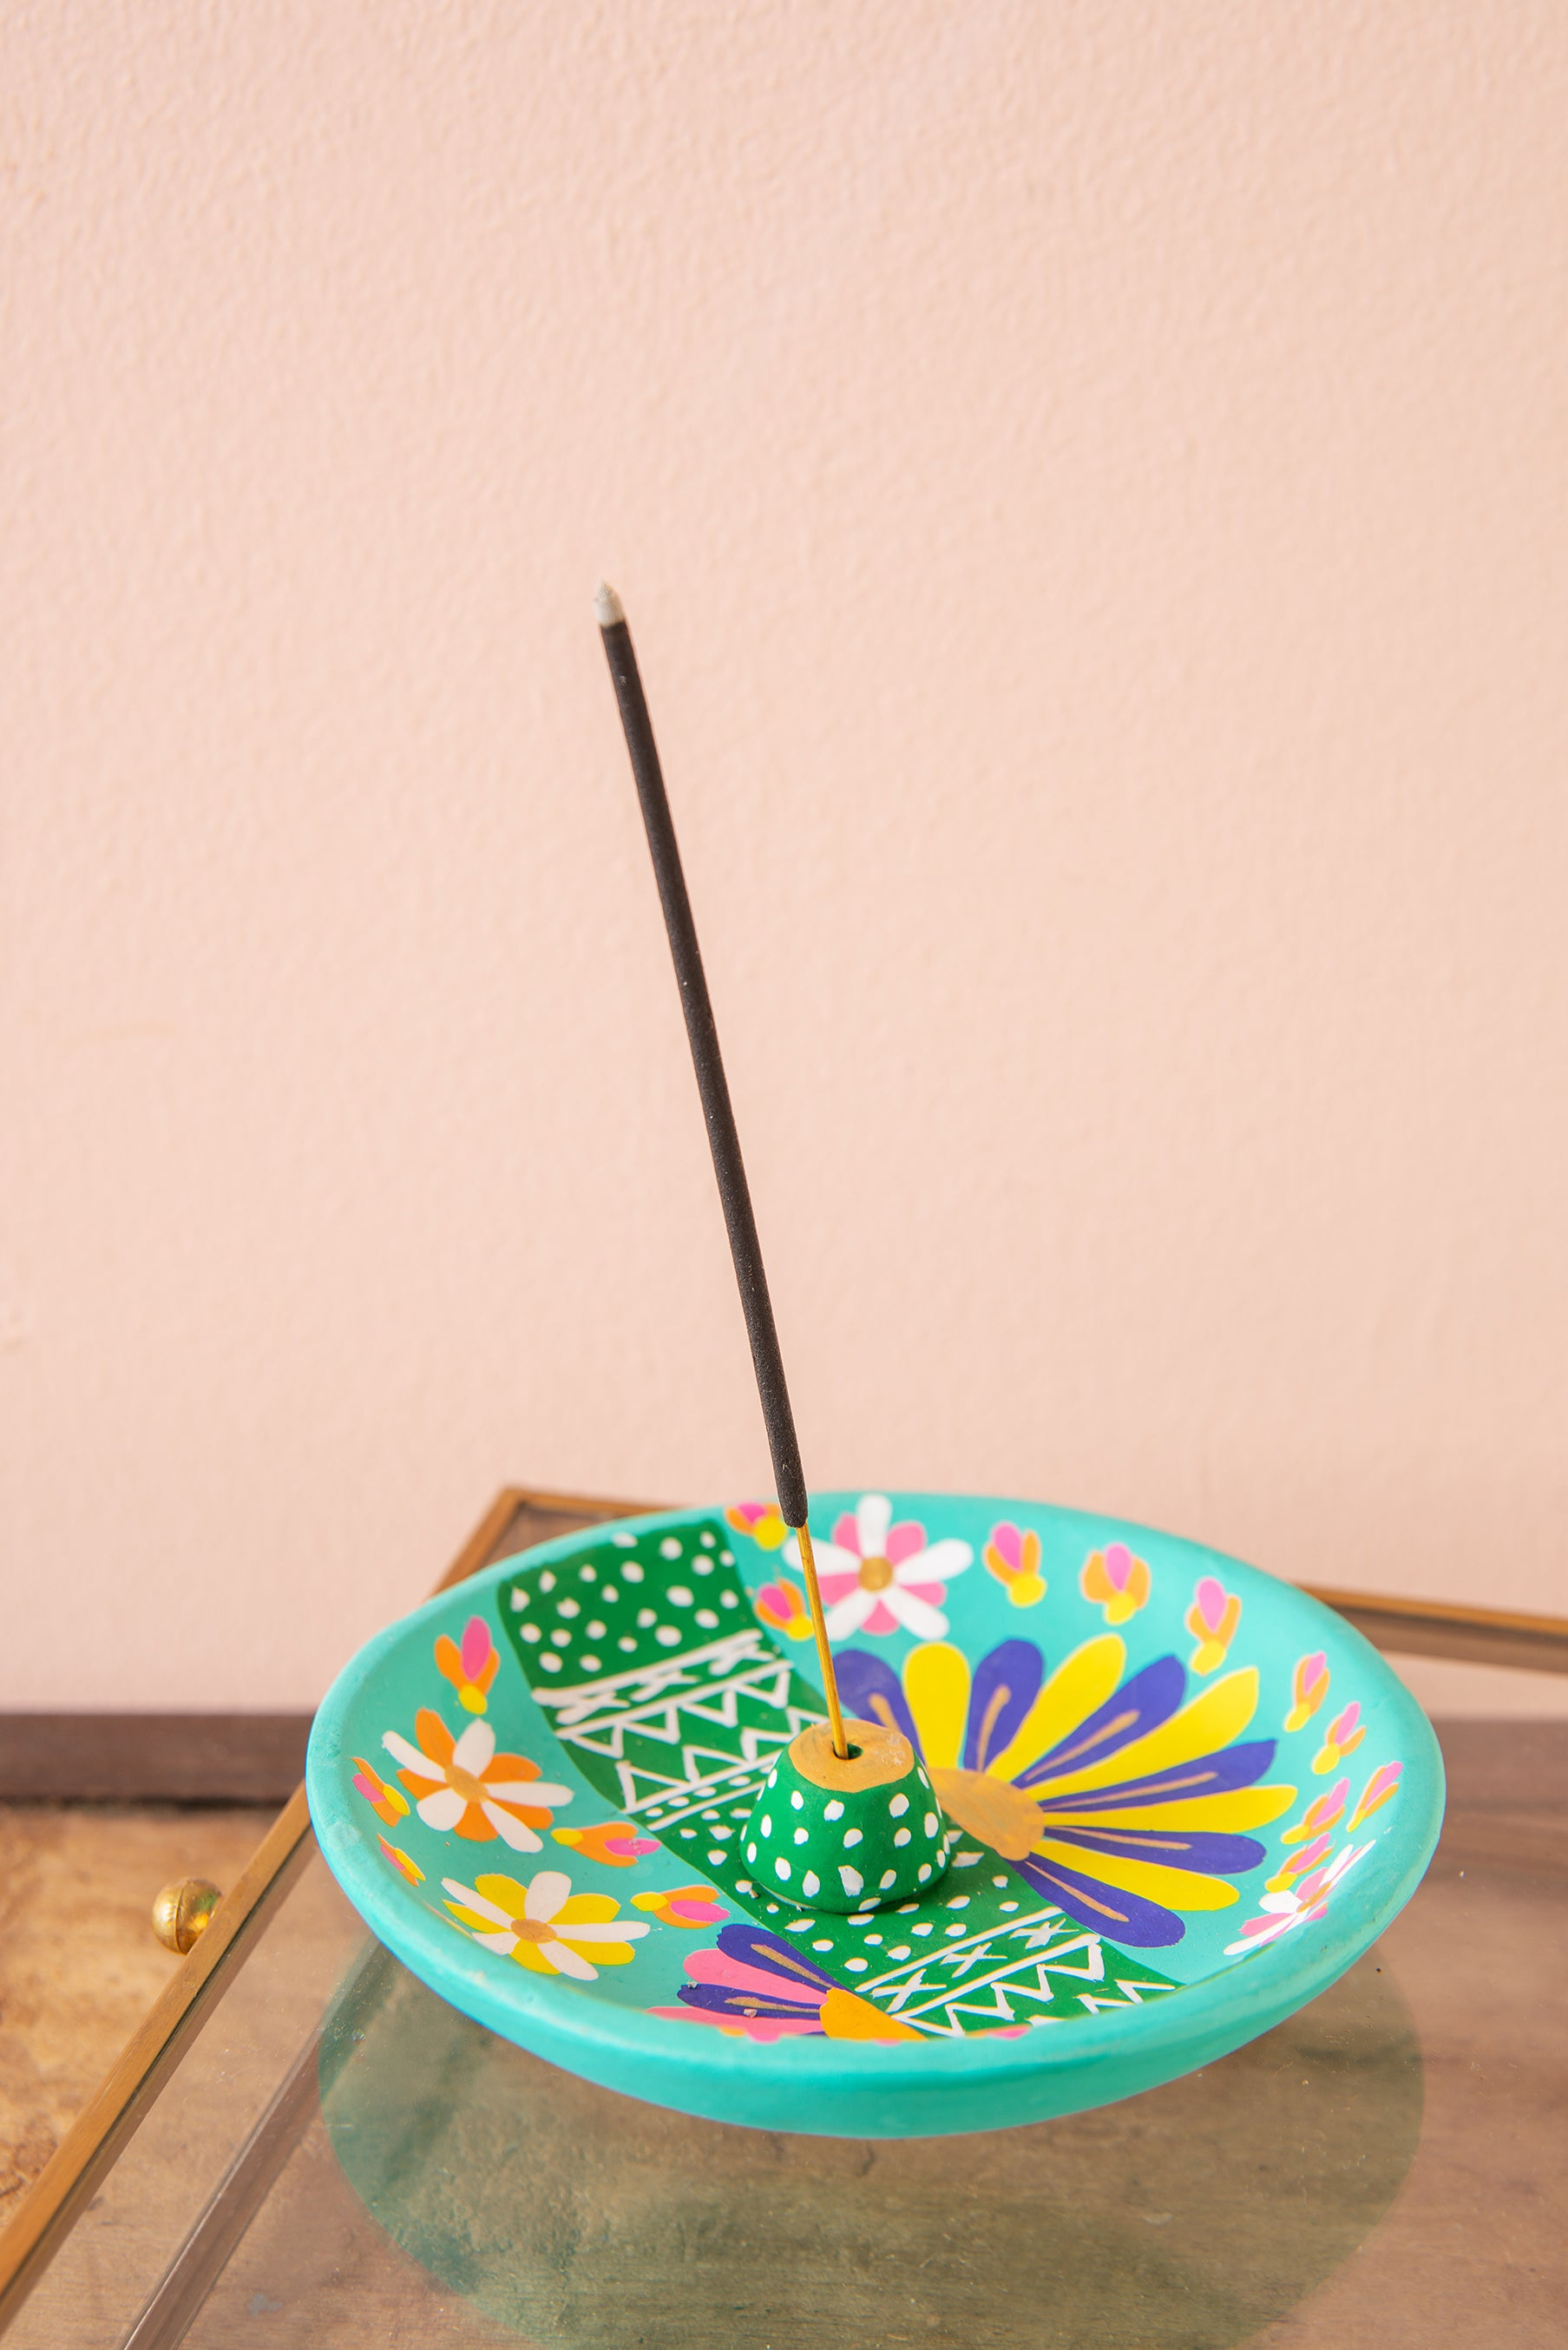 Turquoise Hand Painted Clay Plate Incense Holder